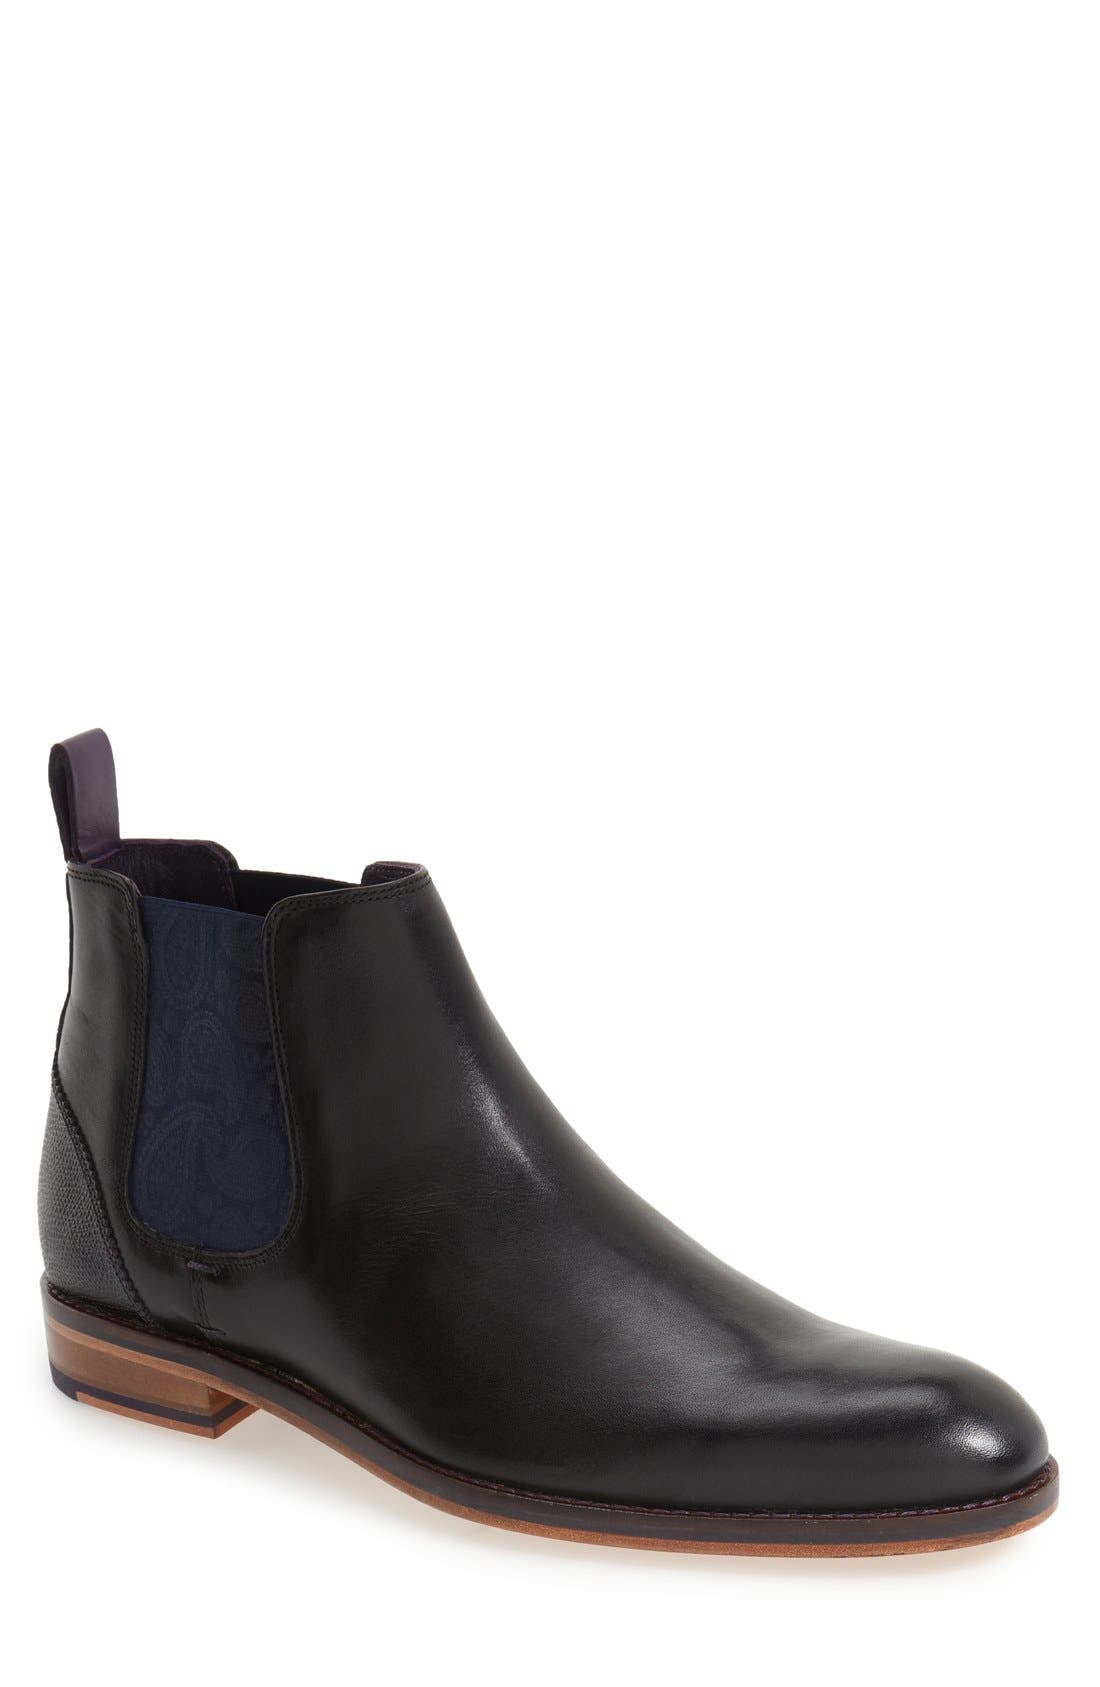 TED BAKER LONDON, 'Camroon 4' Chelsea Boot, Main thumbnail 1, color, BLACK LEATHER